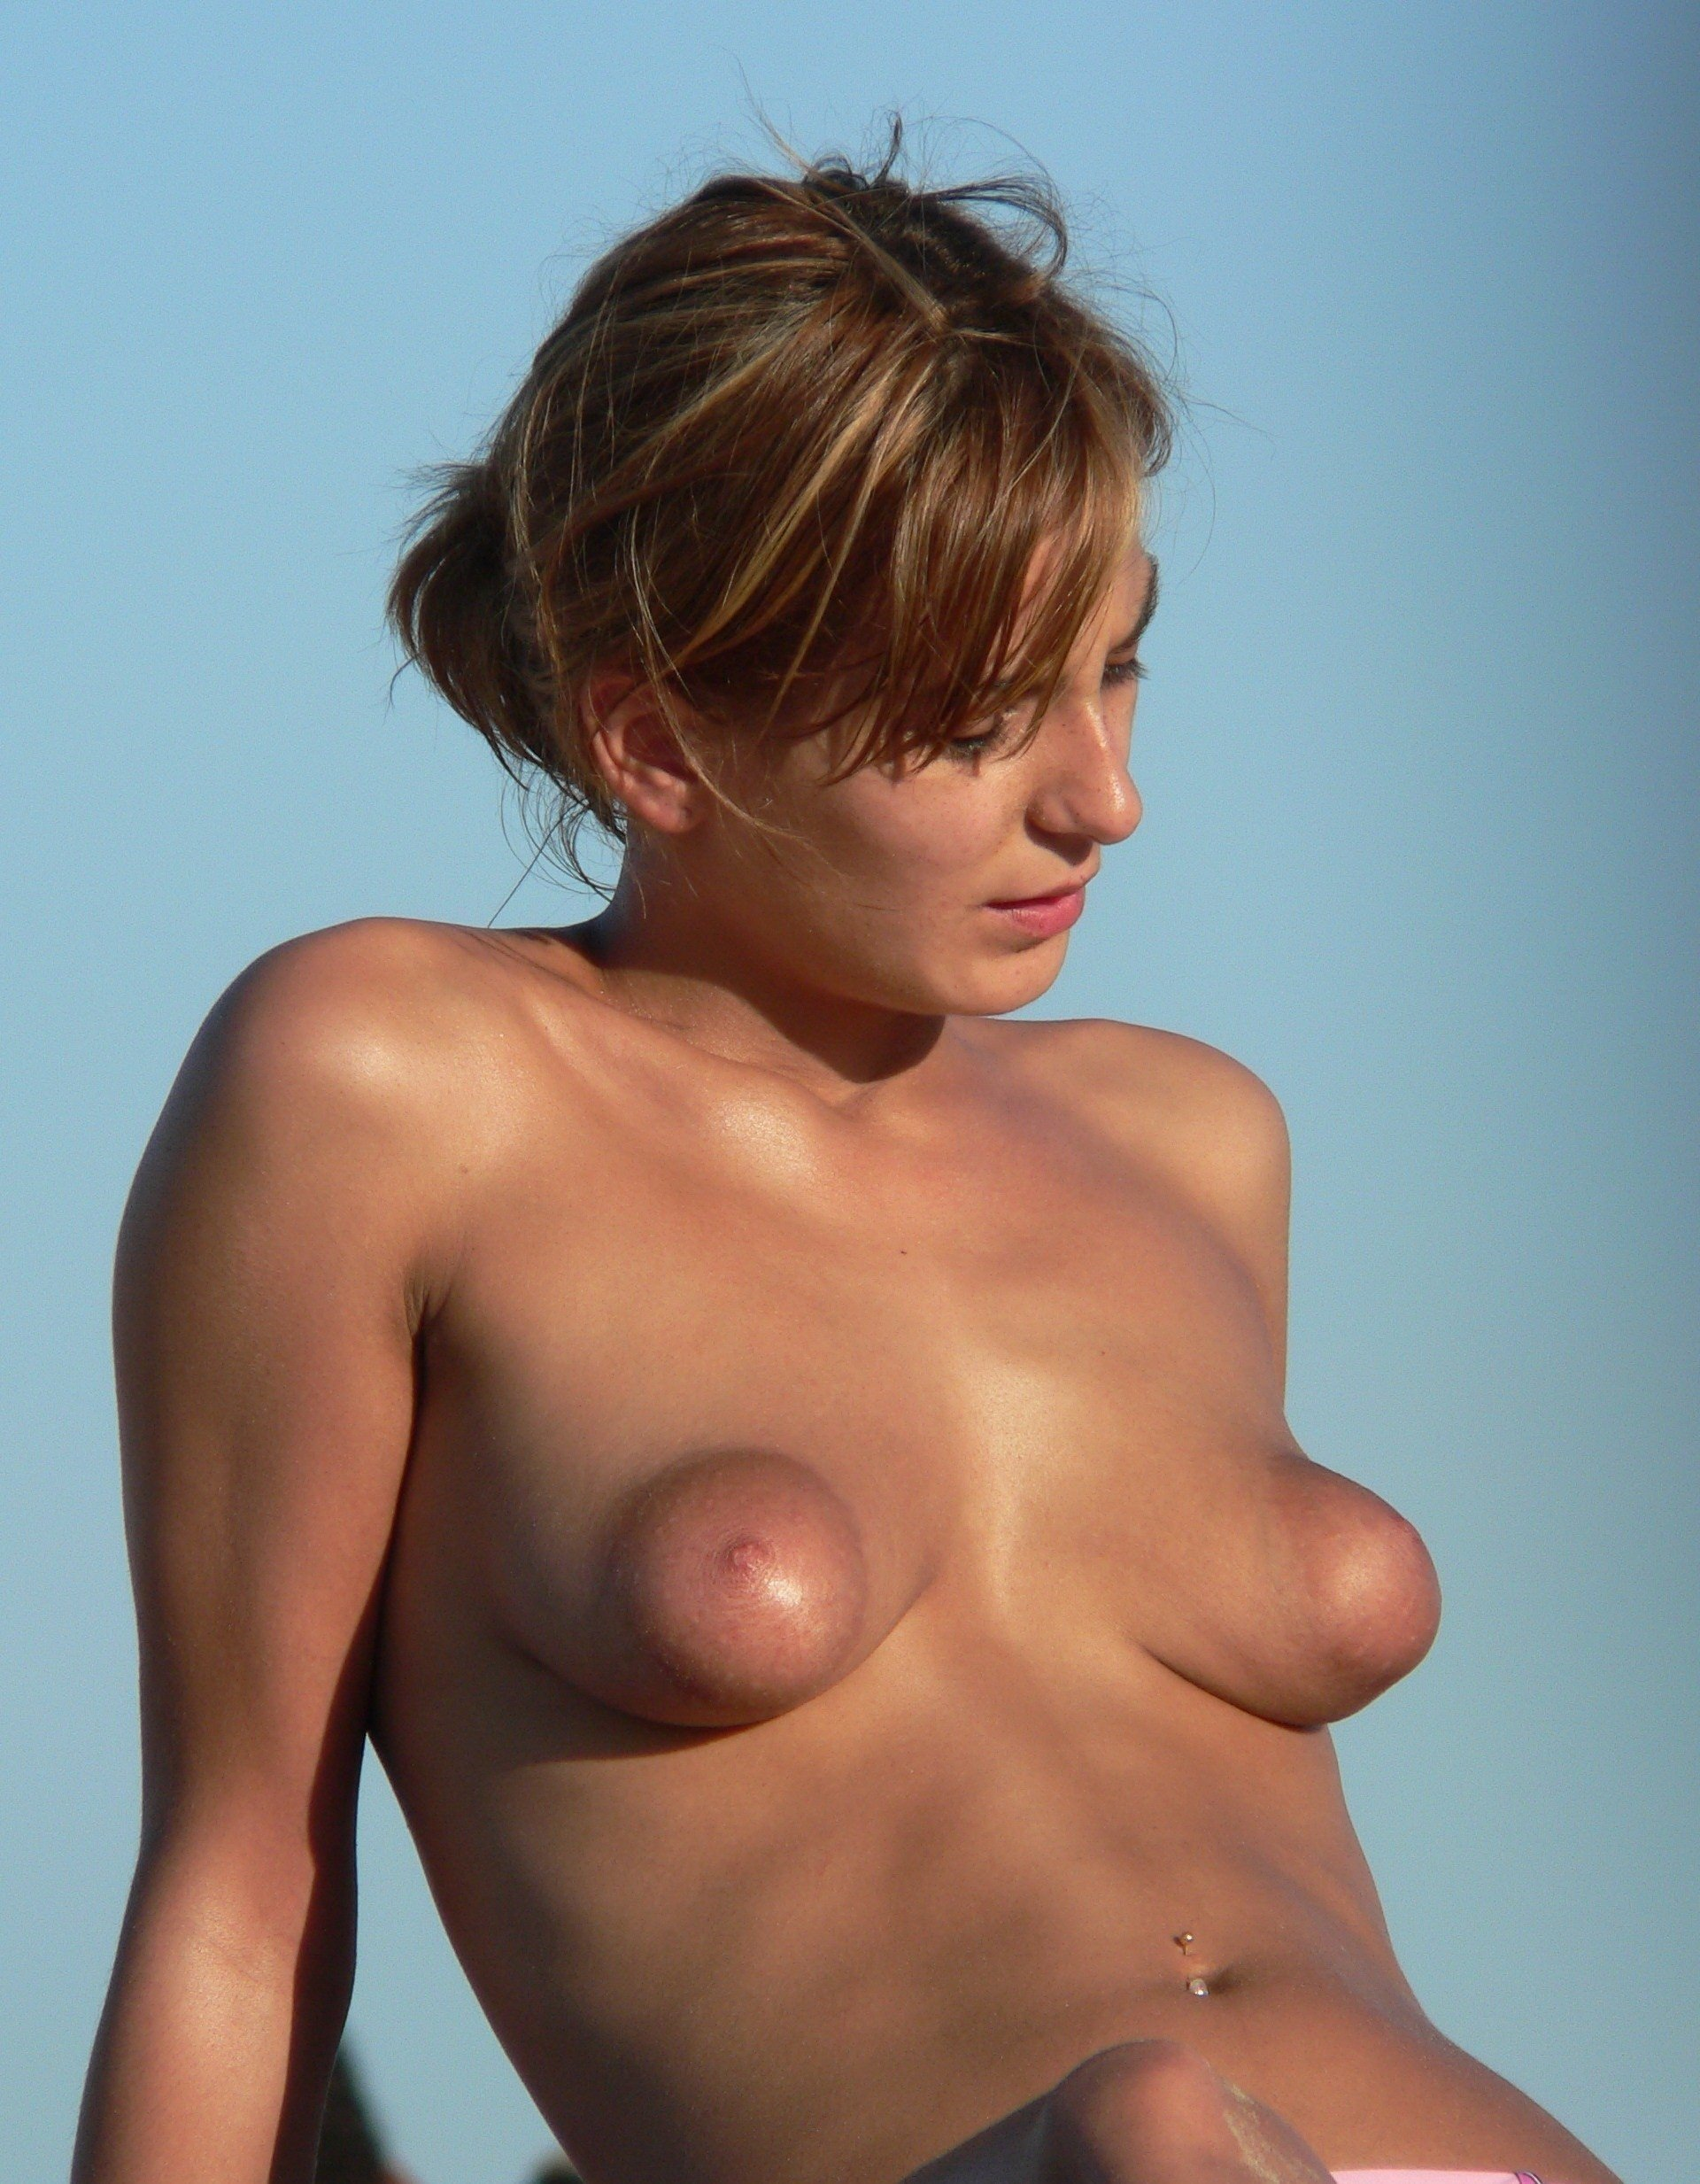 Puffy nipples see through